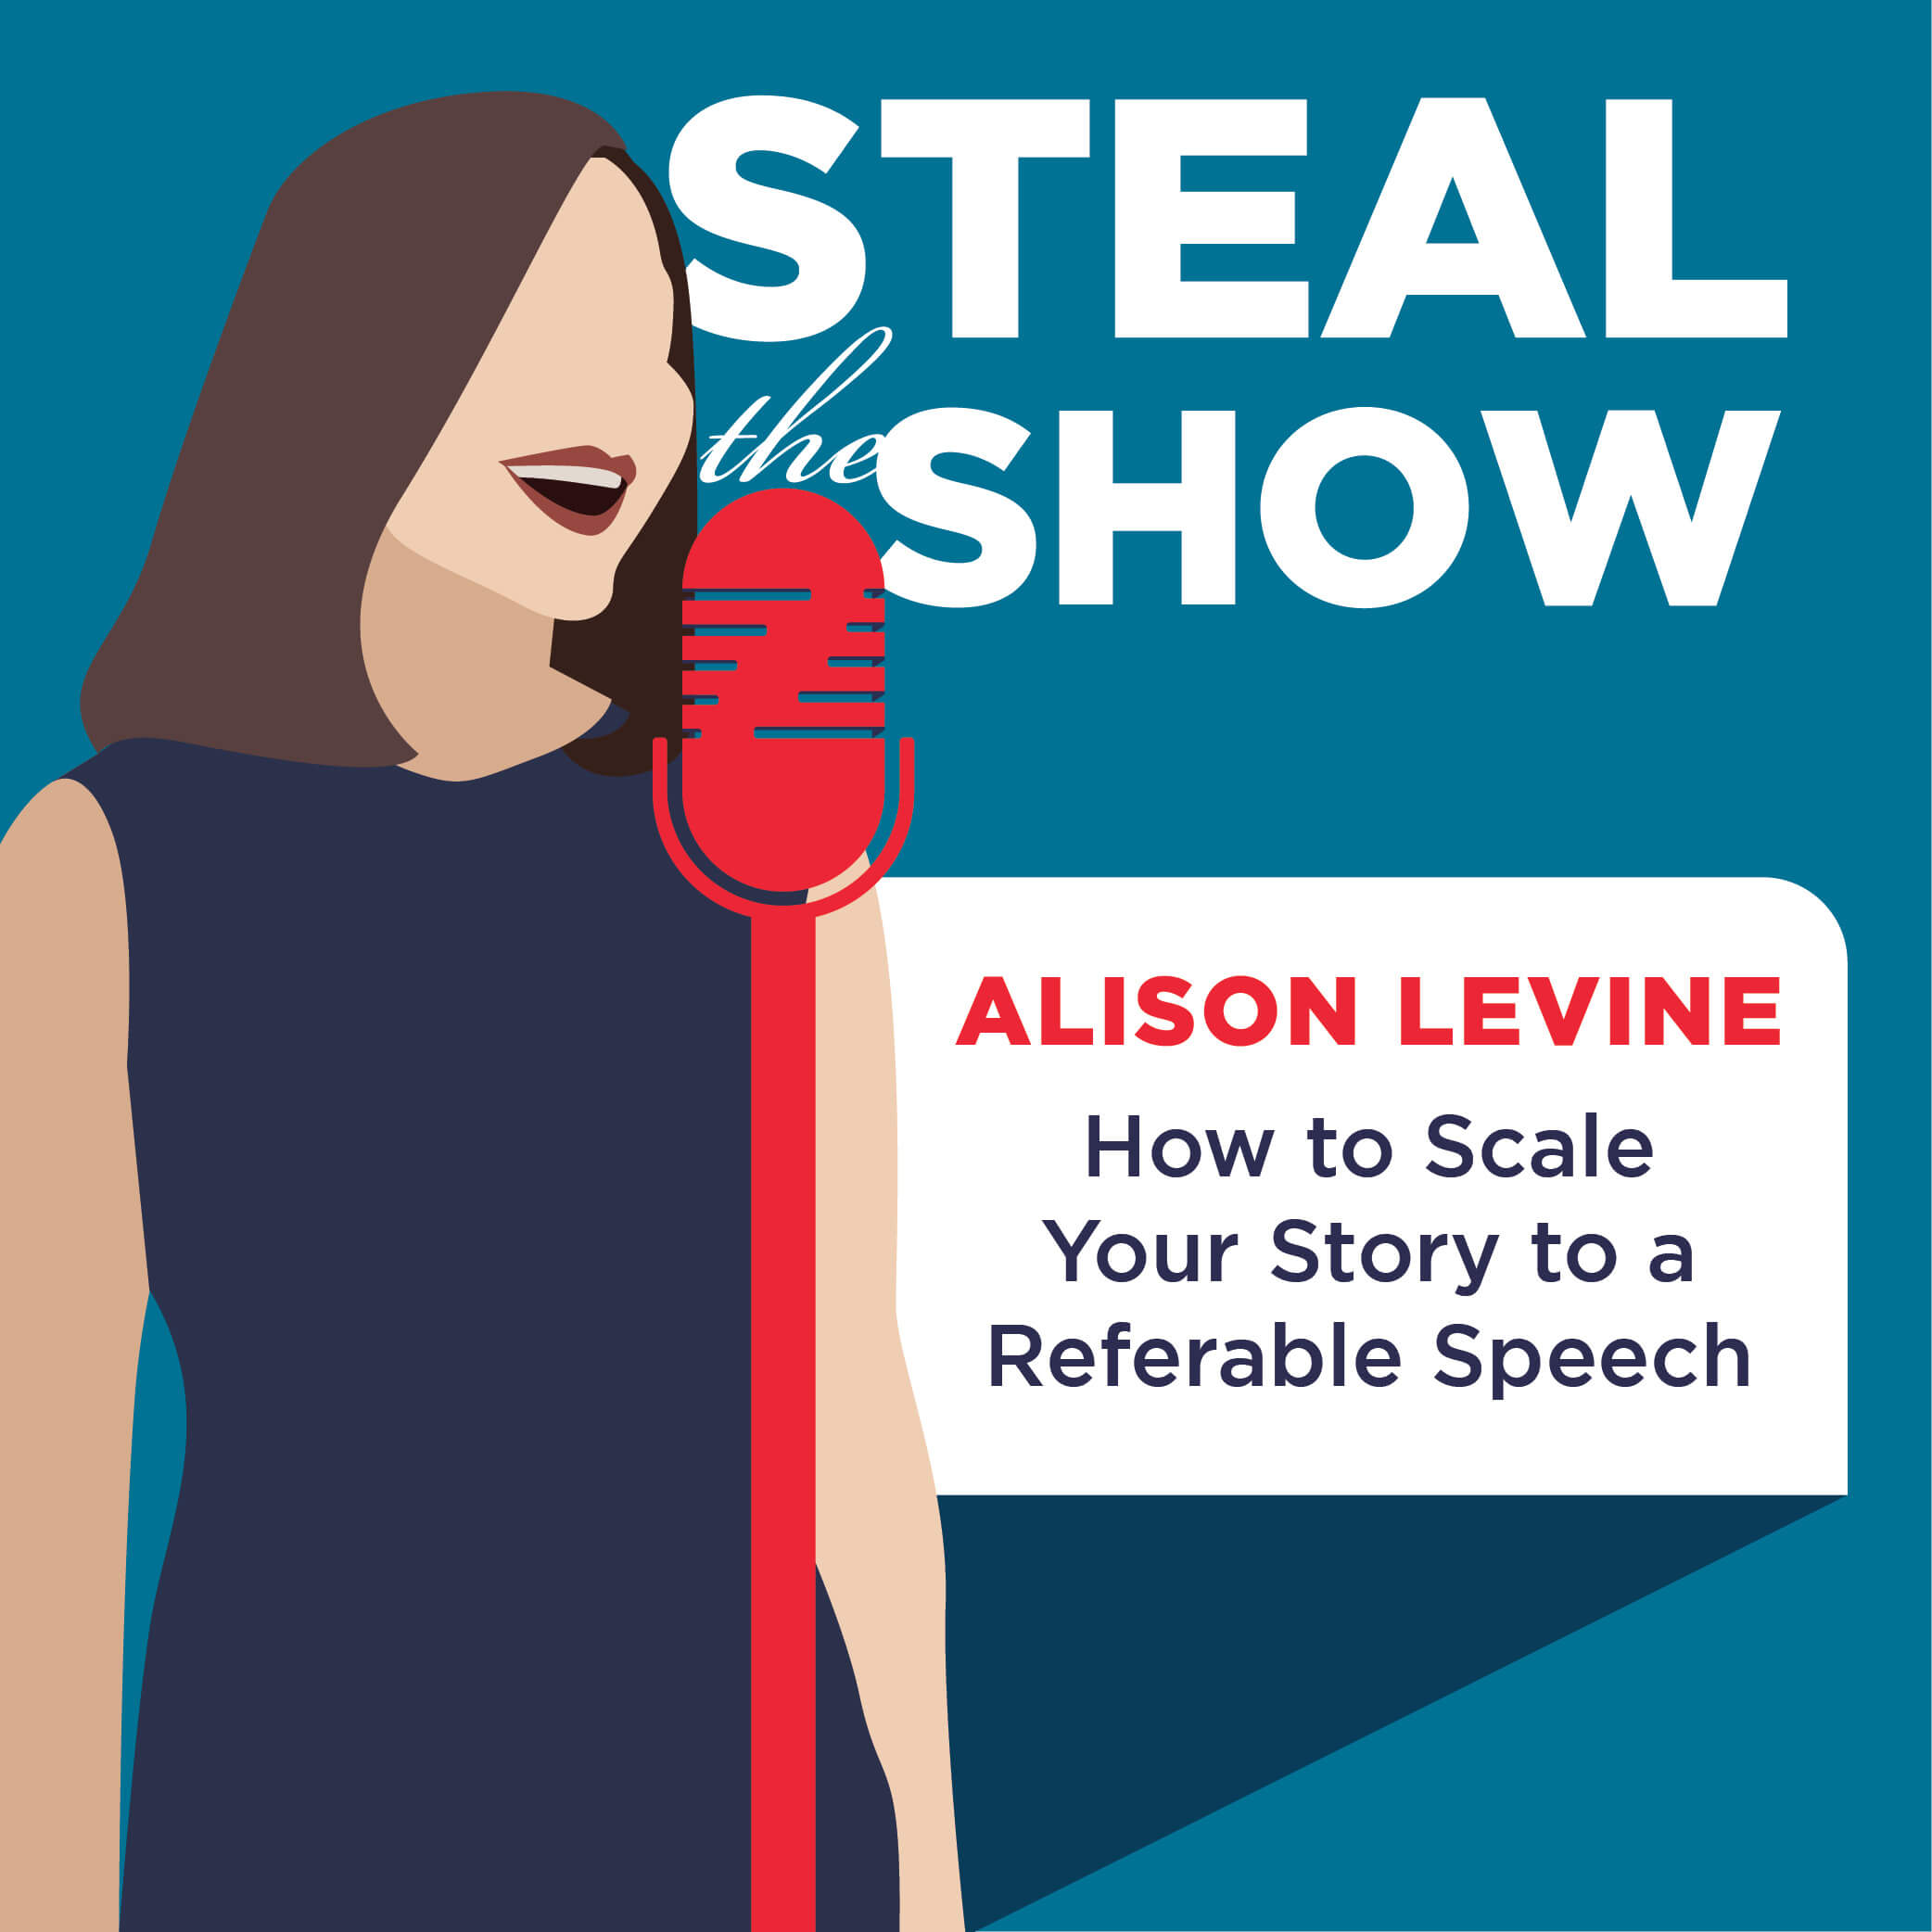 120 Alison Levine on How to Scale Your Story to a Referable Speech – Steal the Show with Michael Port